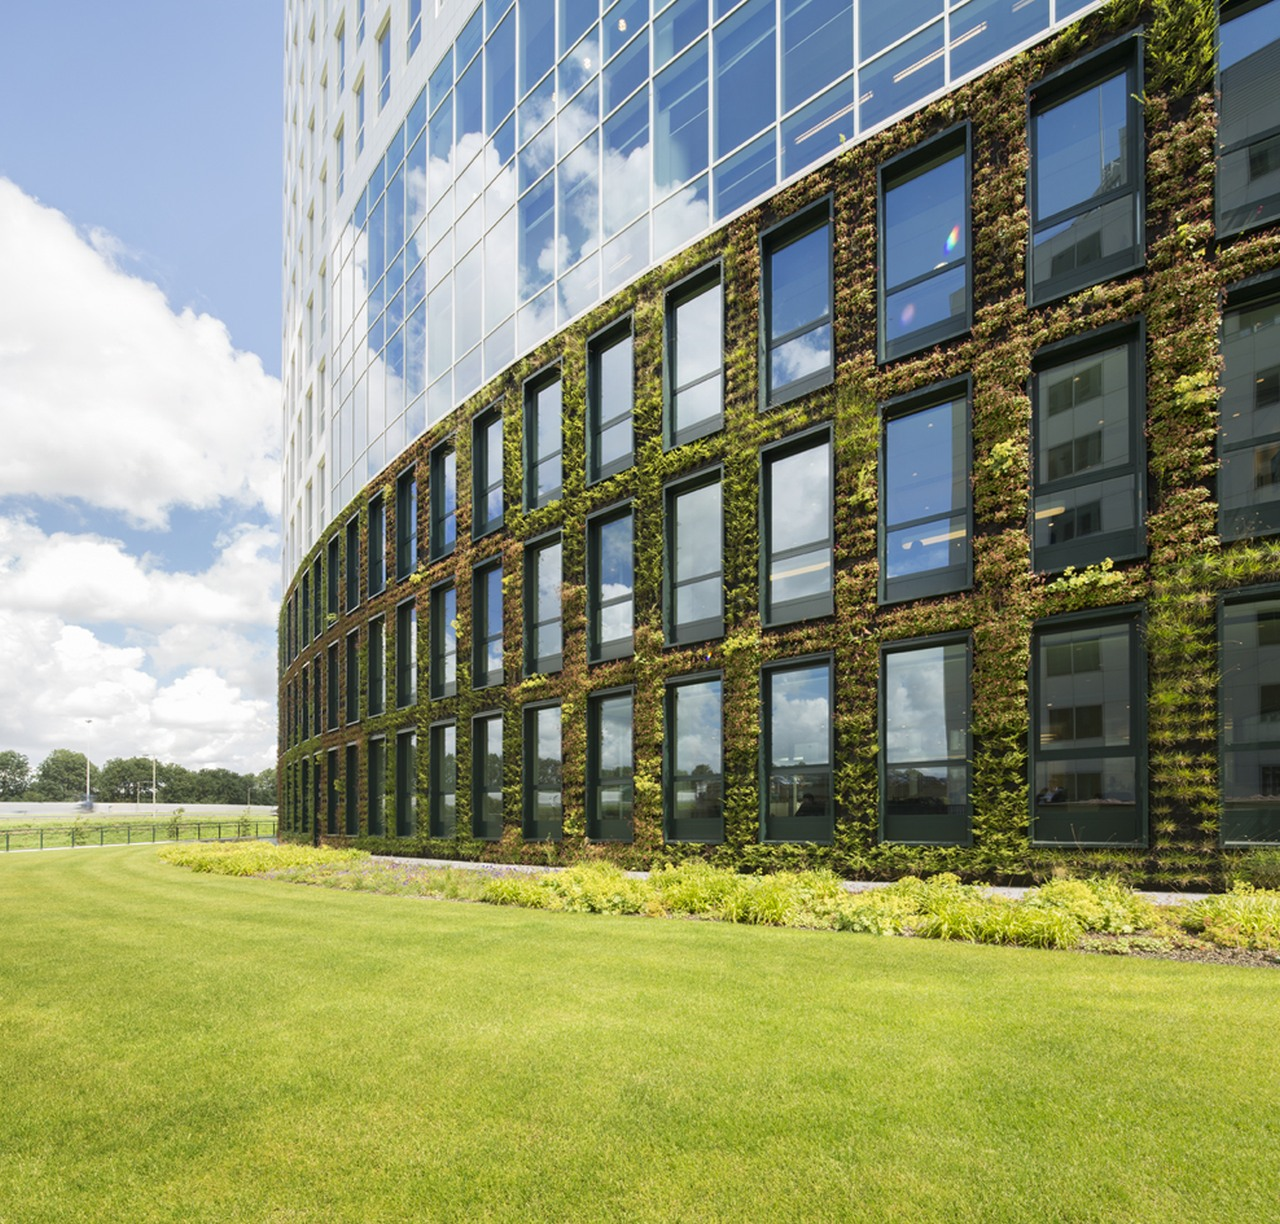 Gallery of eneco headquarter rotterdam hofman dujardin for Architecture rotterdam